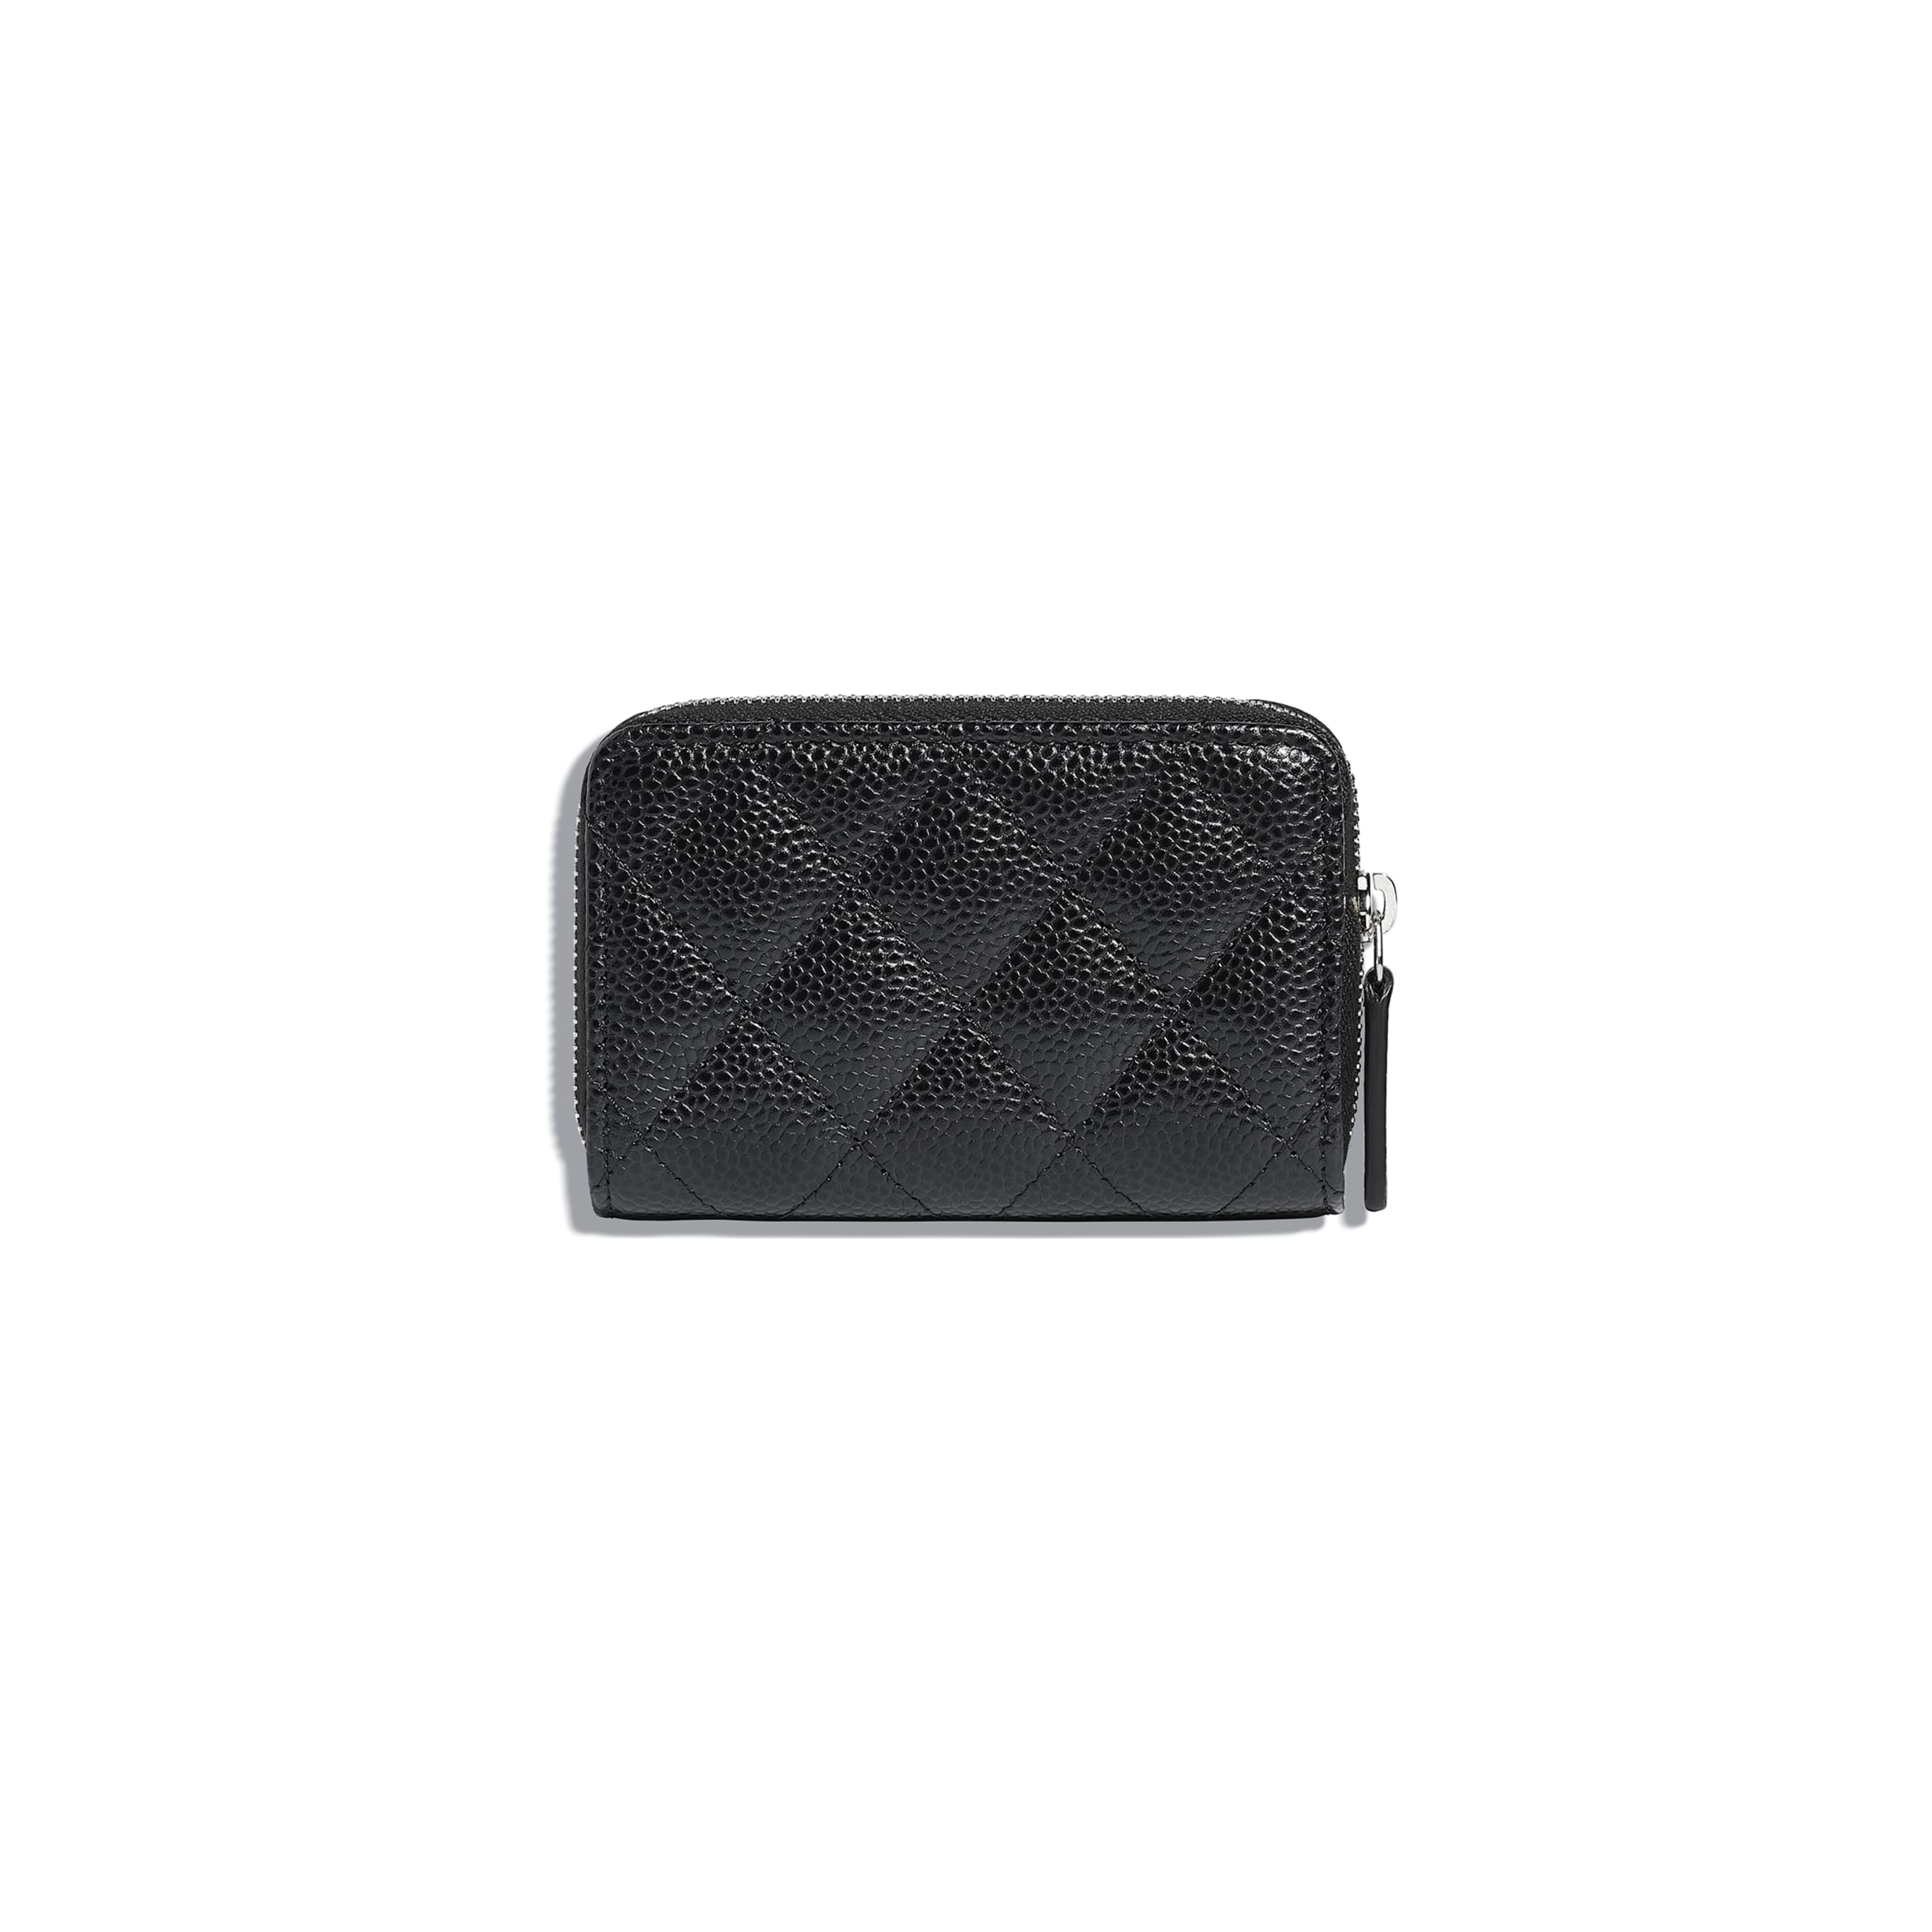 Classic Zipped Coin Purse - Black - Grained Calfskin & Silver-Tone Metal - Alternative view - see standard sized version